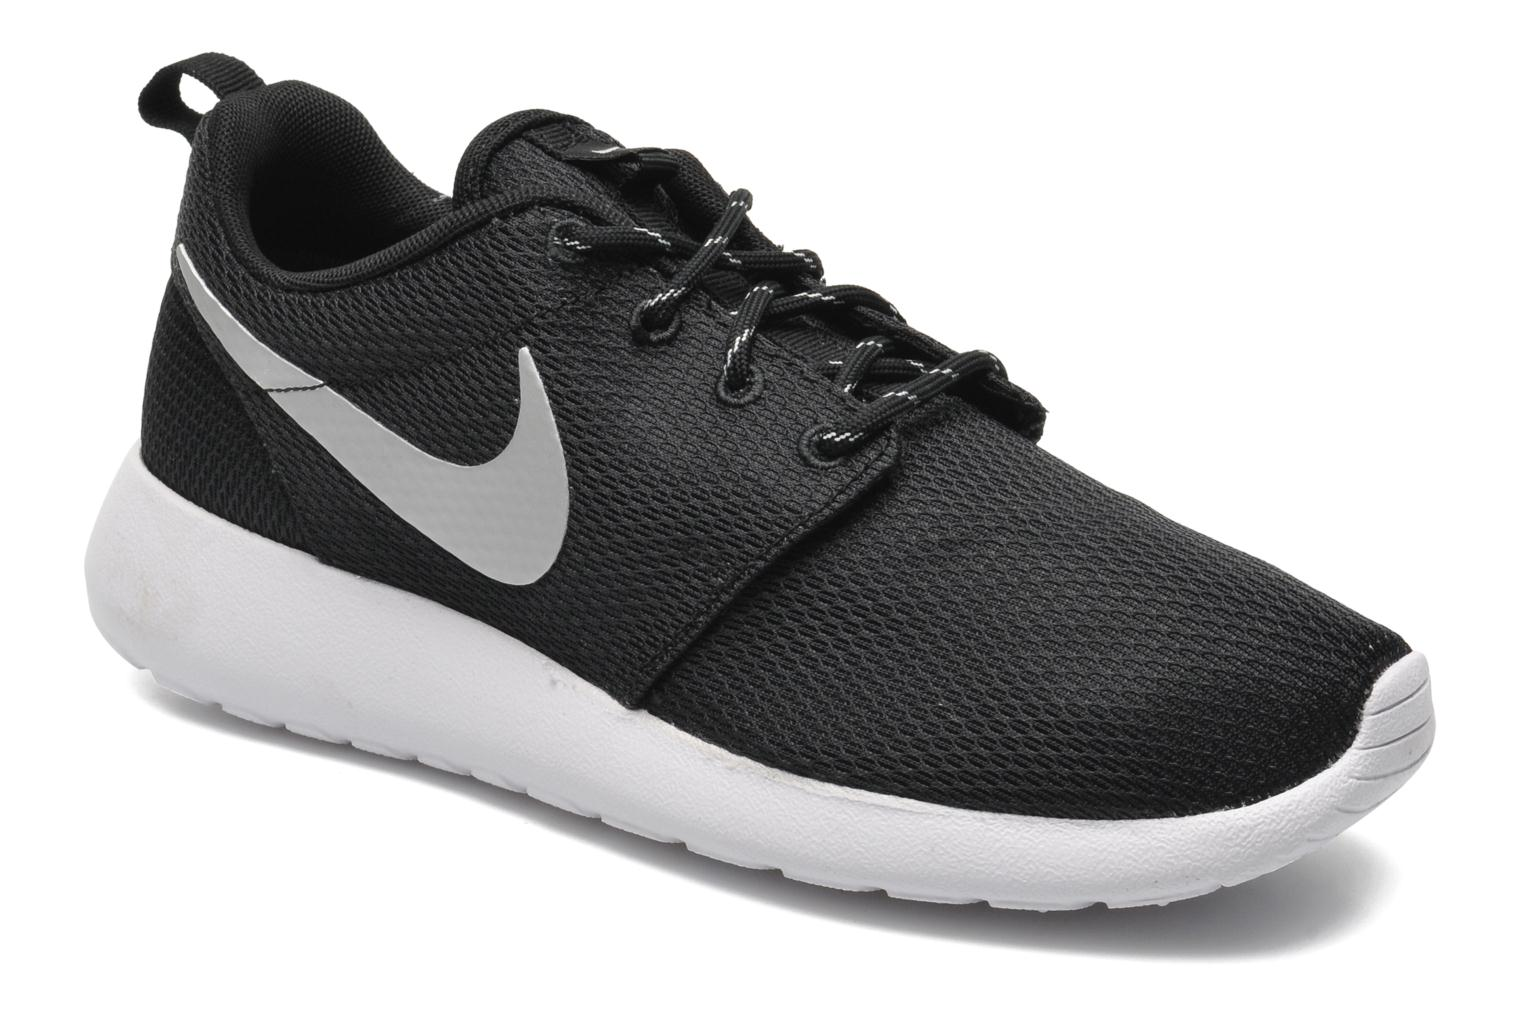 cheap nike roshe run blanc noir hyper punch c666d a4052